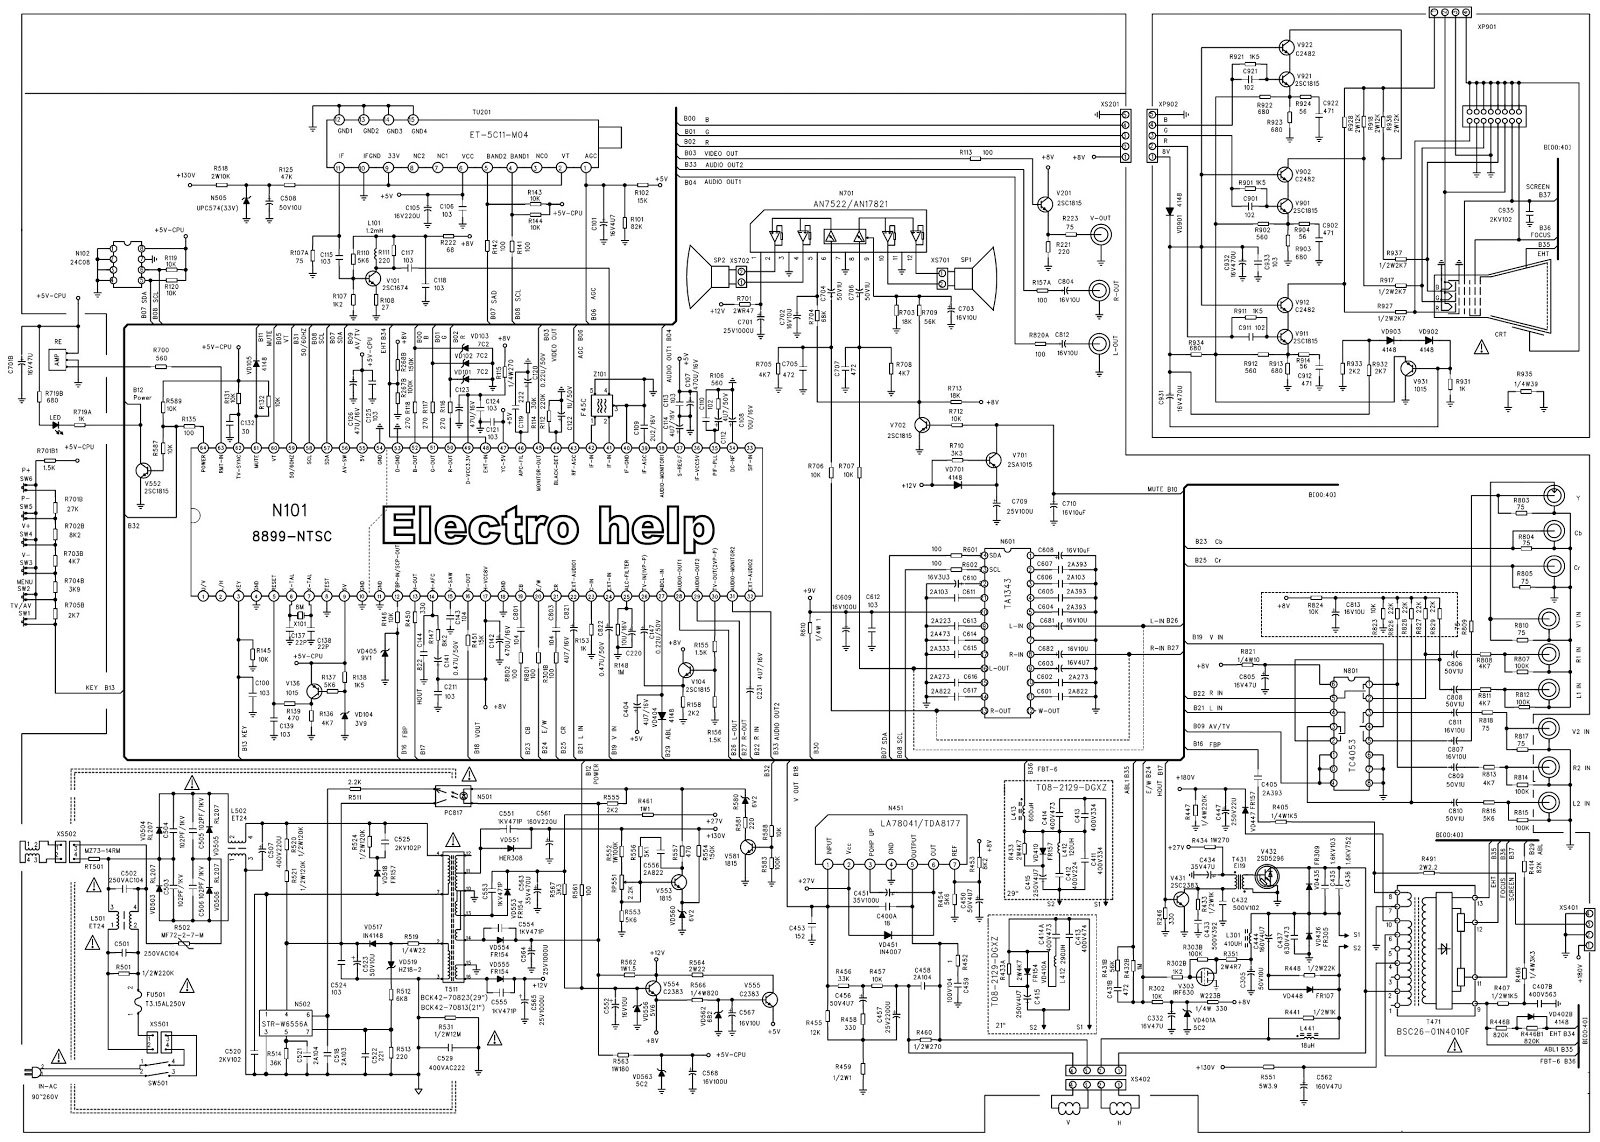 schematic diagram tv toshiba 29 online schematic diagram u2022 rh holyoak co HP Laptop Parts Diagram Toshiba Laptop Part Numbers